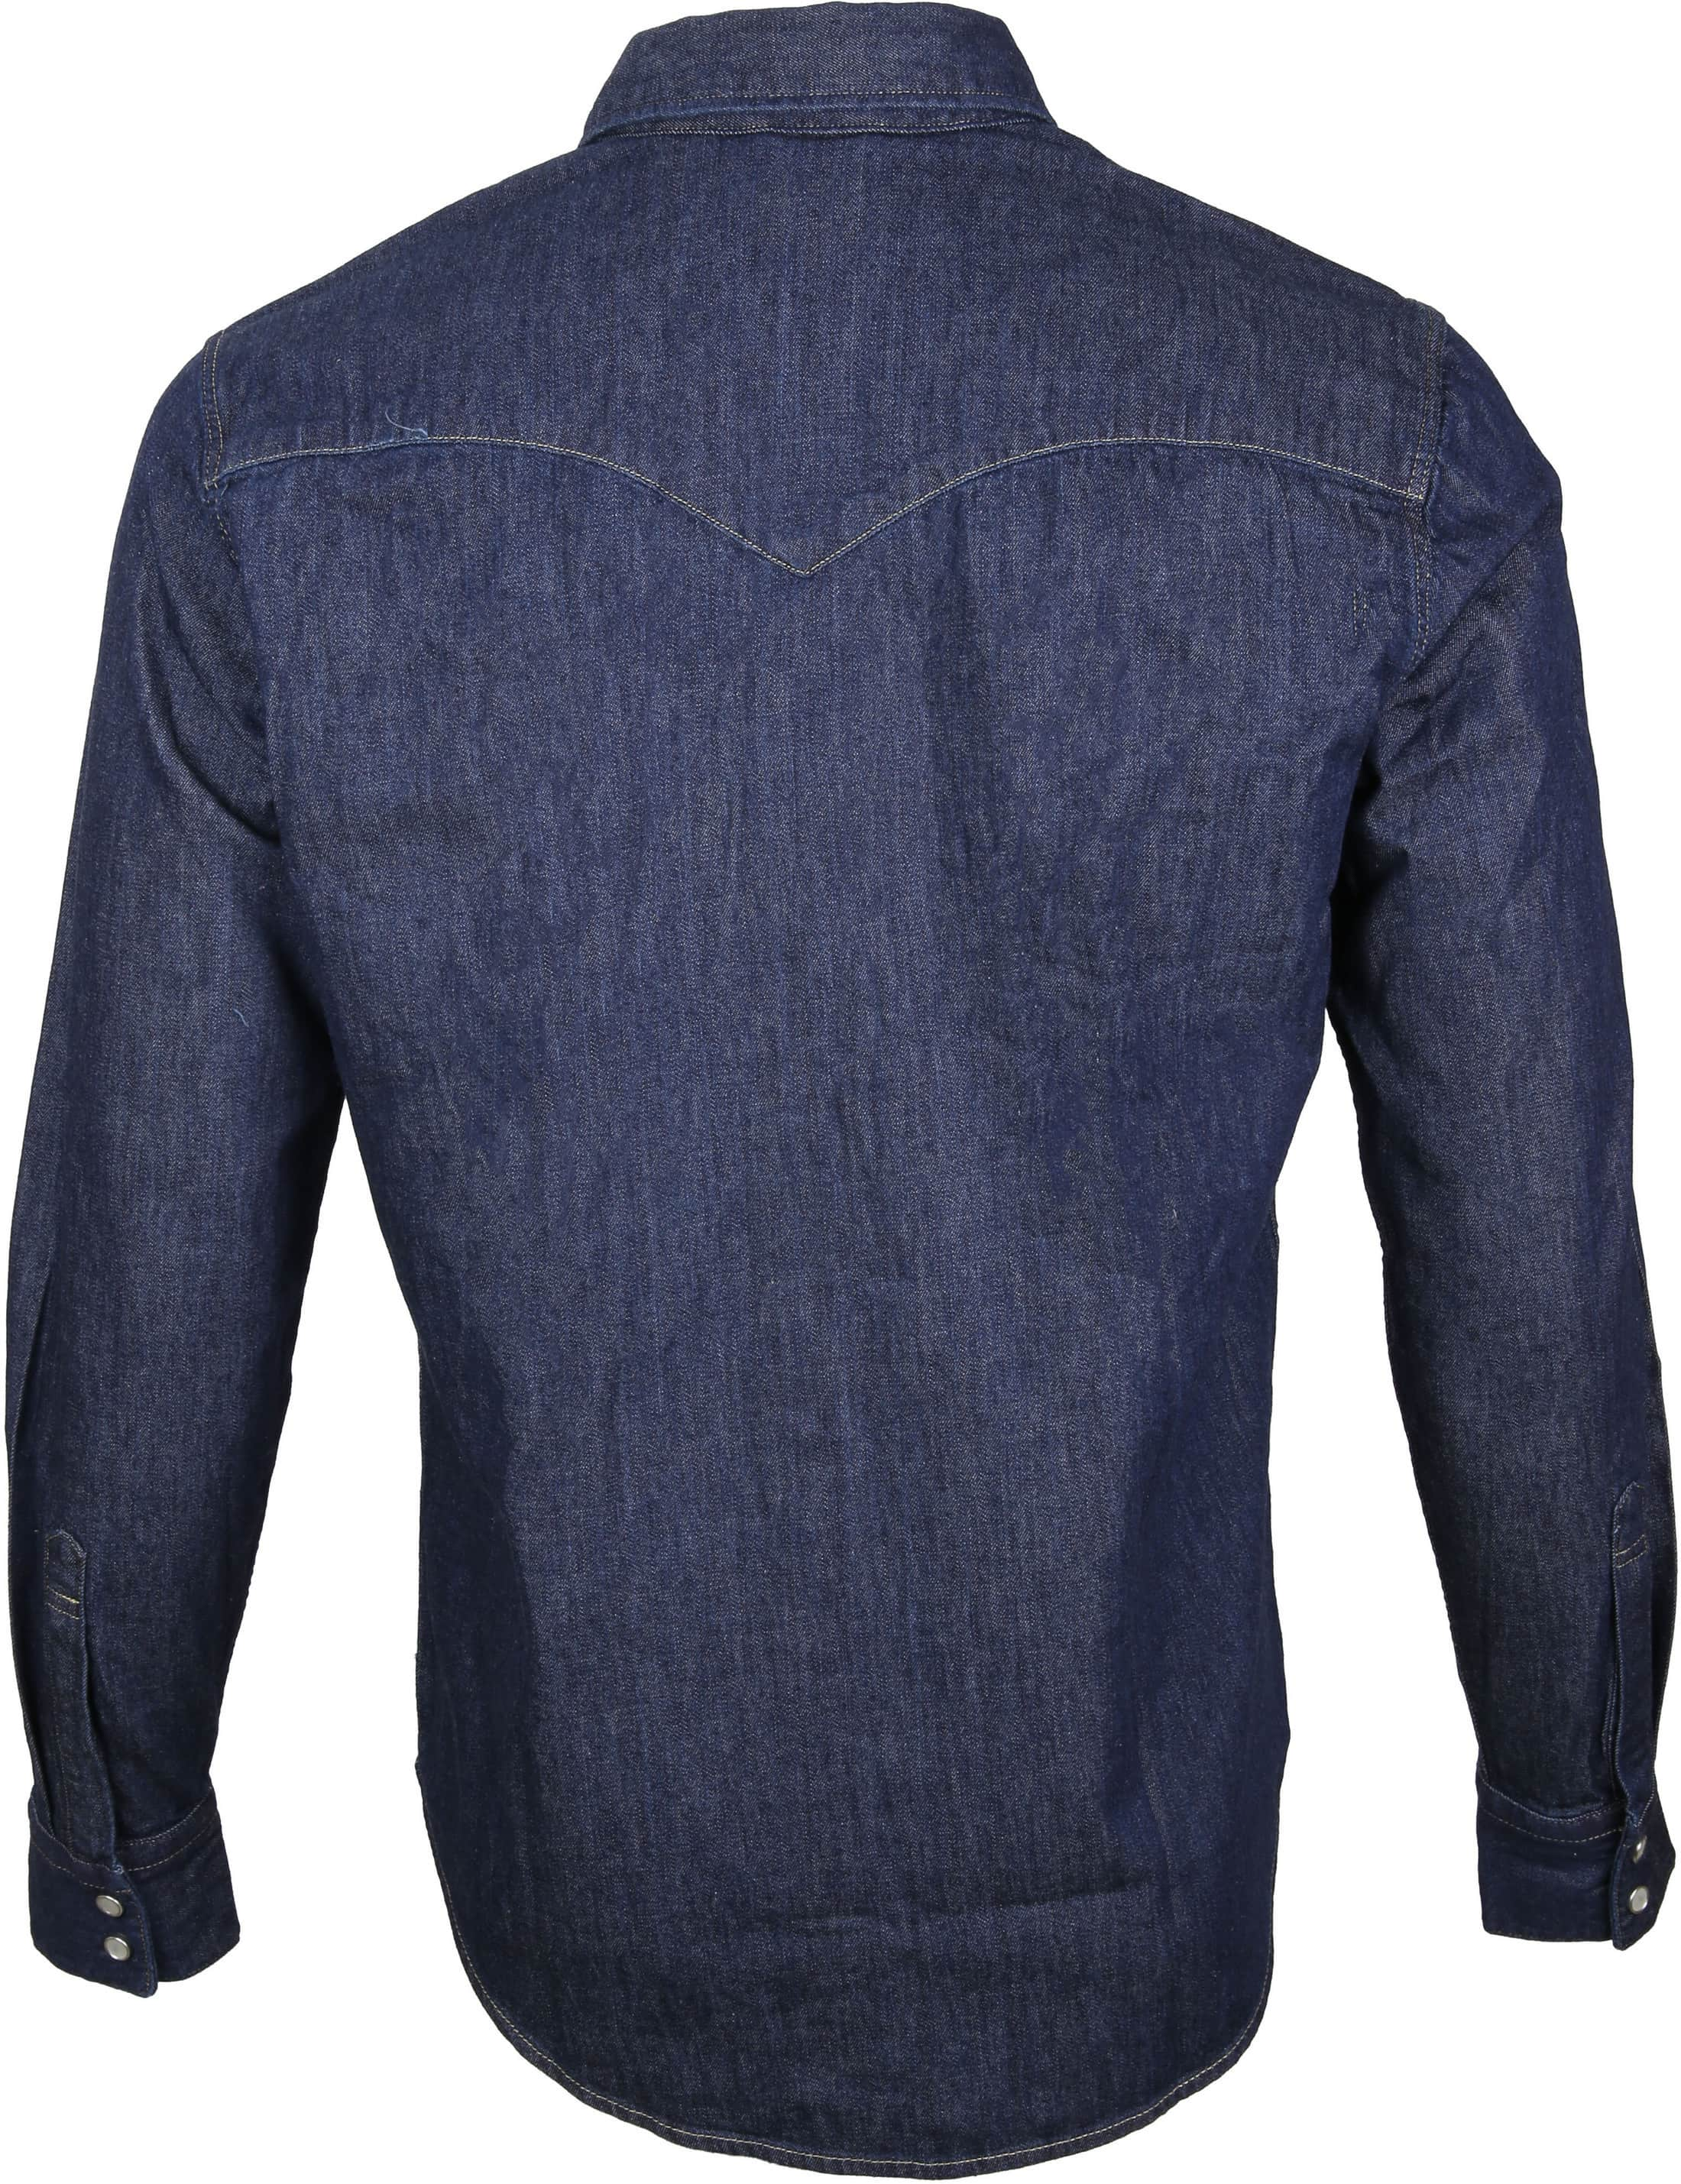 Levi's Barstow Western Overhemd Navy foto 3